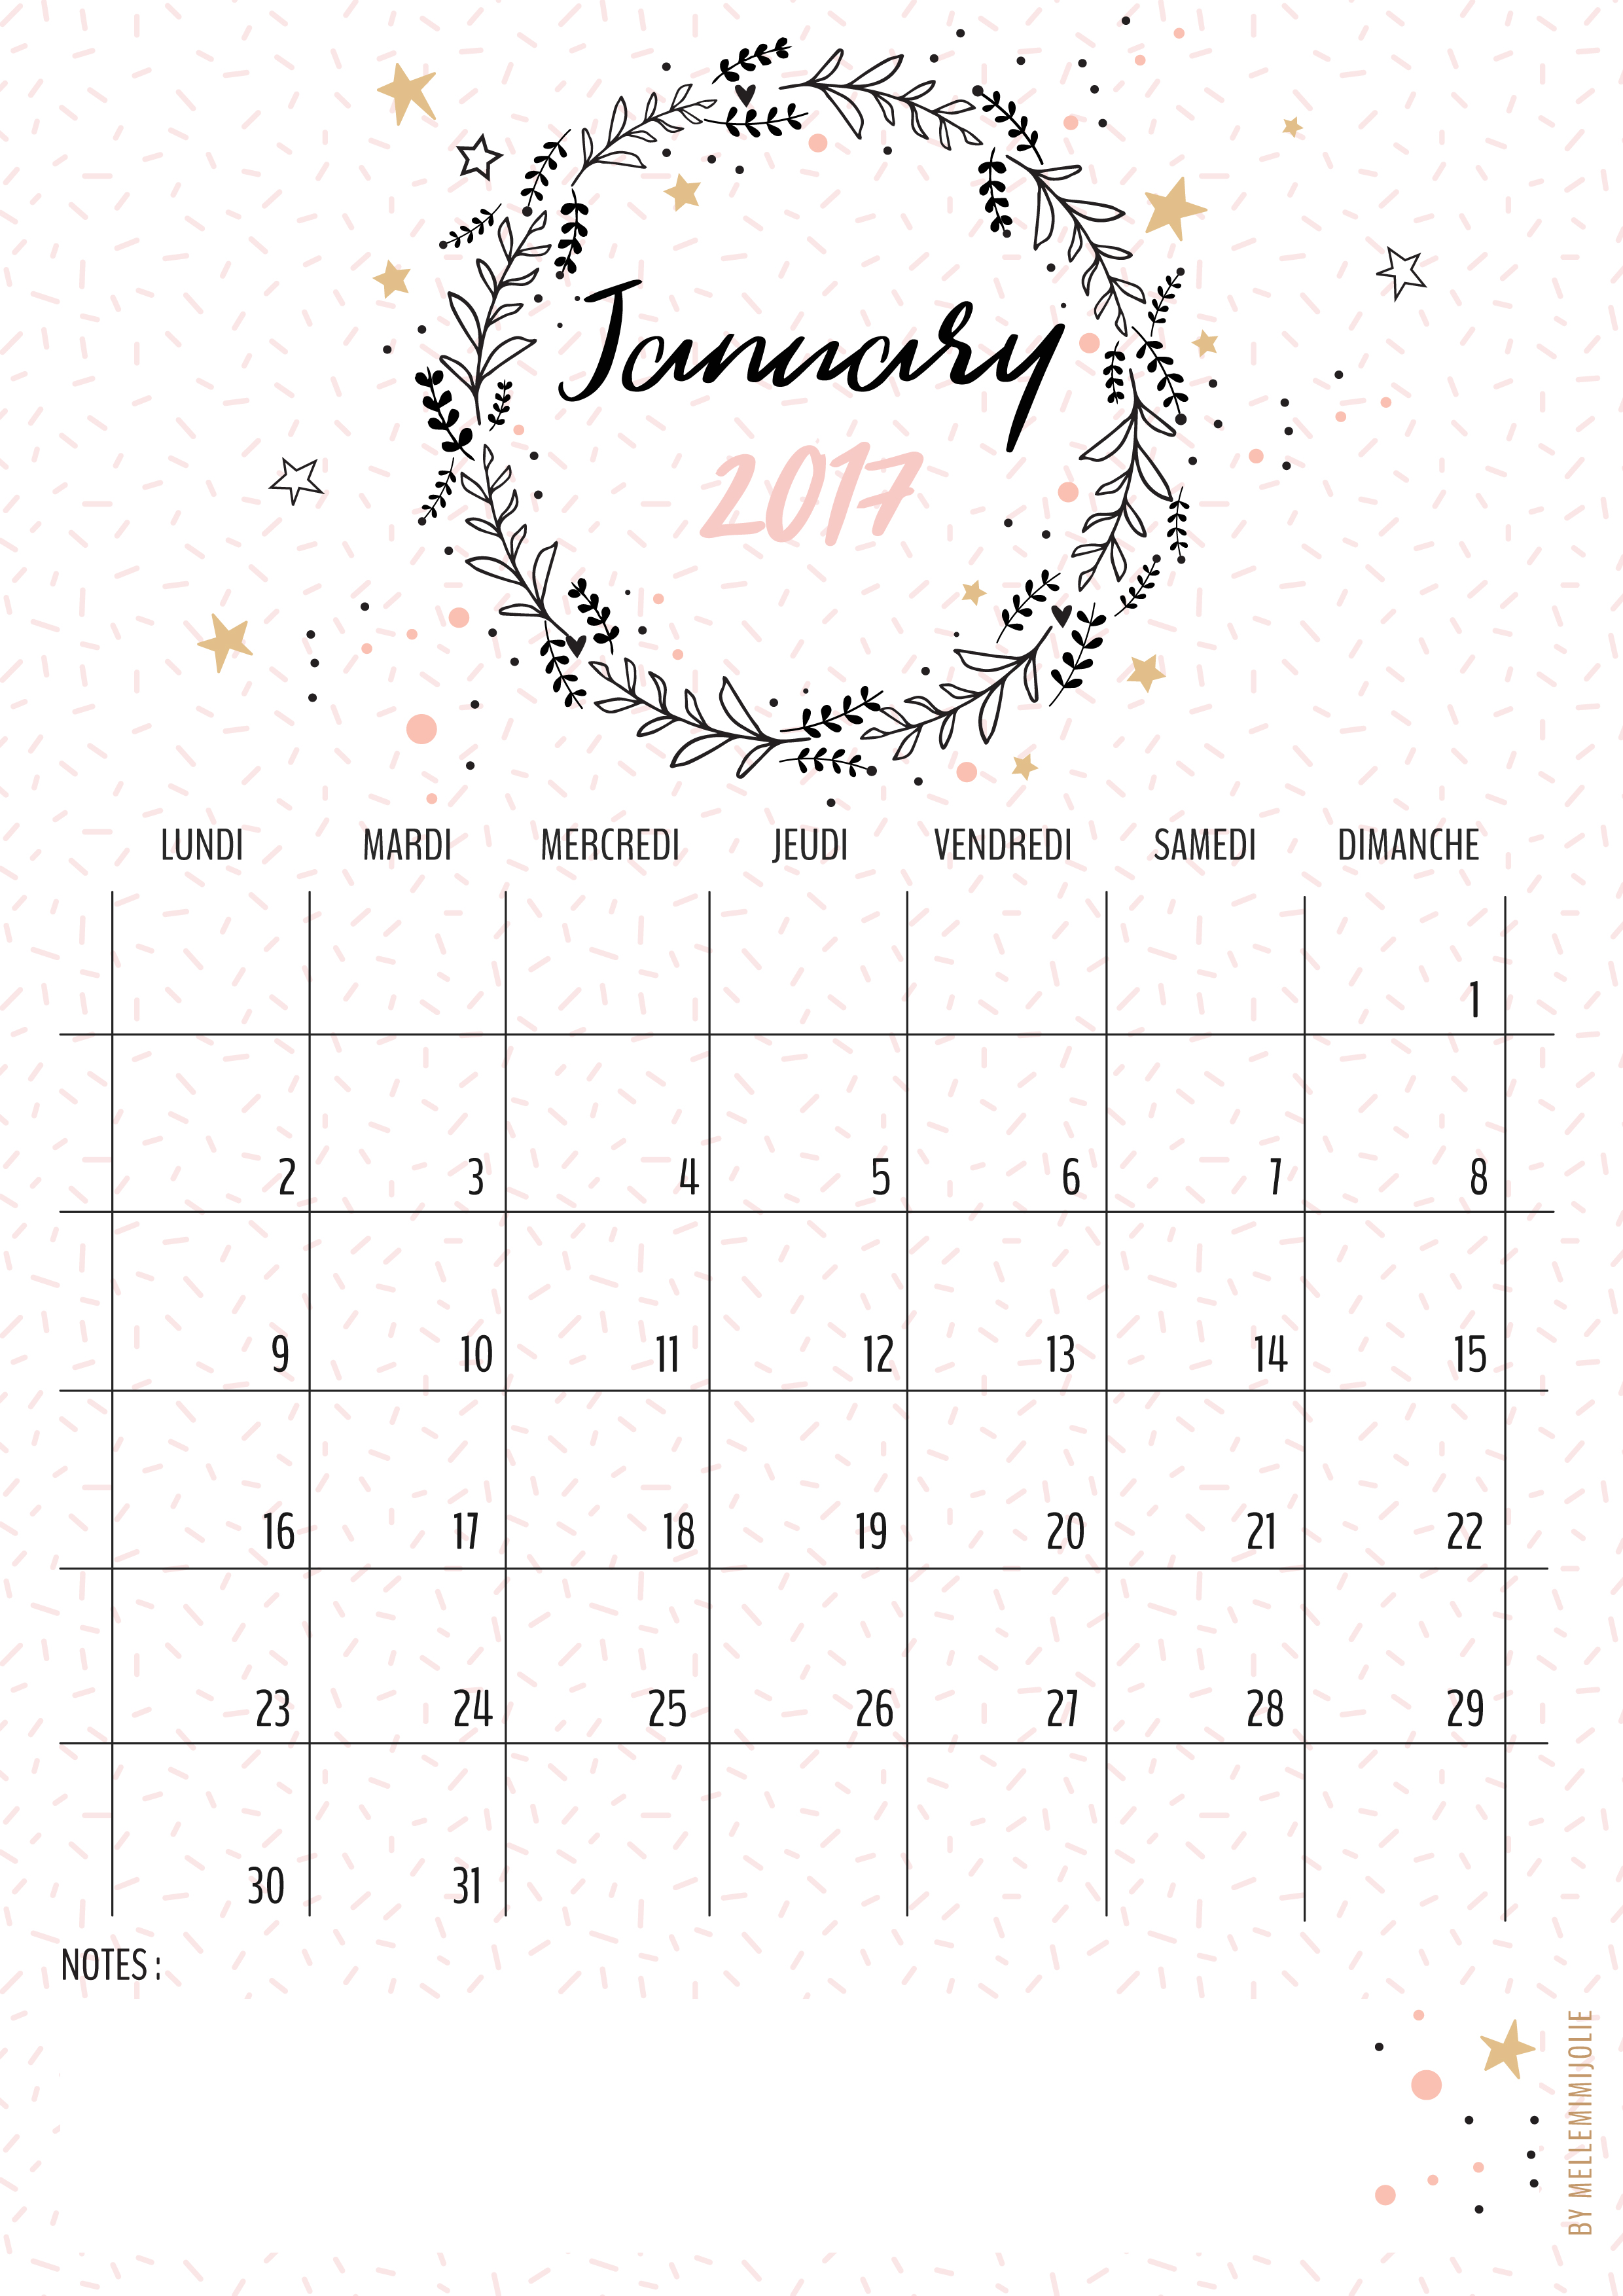 Calendar 2019 With Notes